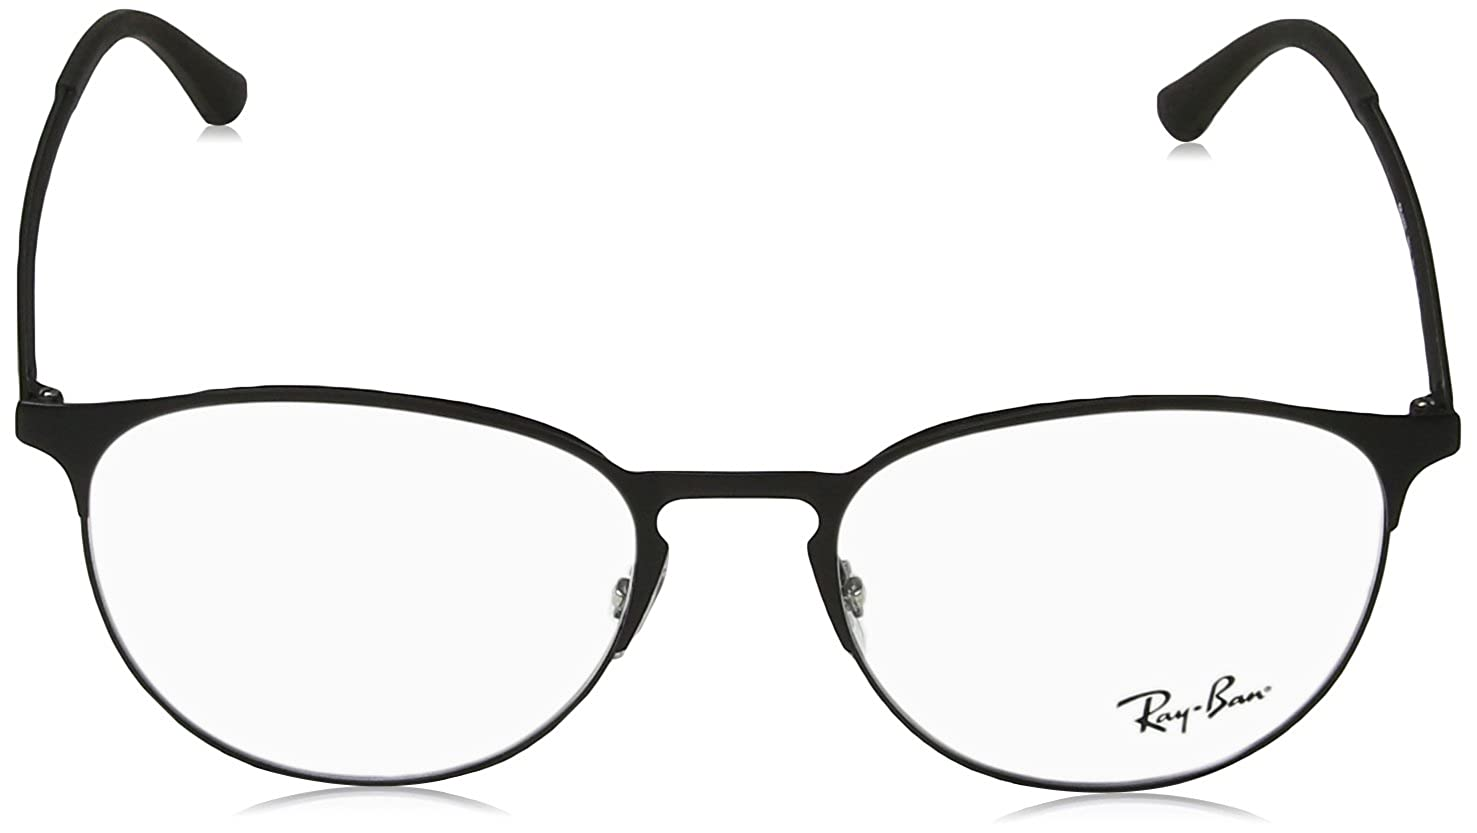 1d3cc90b2a1 Amazon.com  Ray-Ban 0rx6375 No Polarization Round Prescription Eyewear  Frame Top on Matte Black